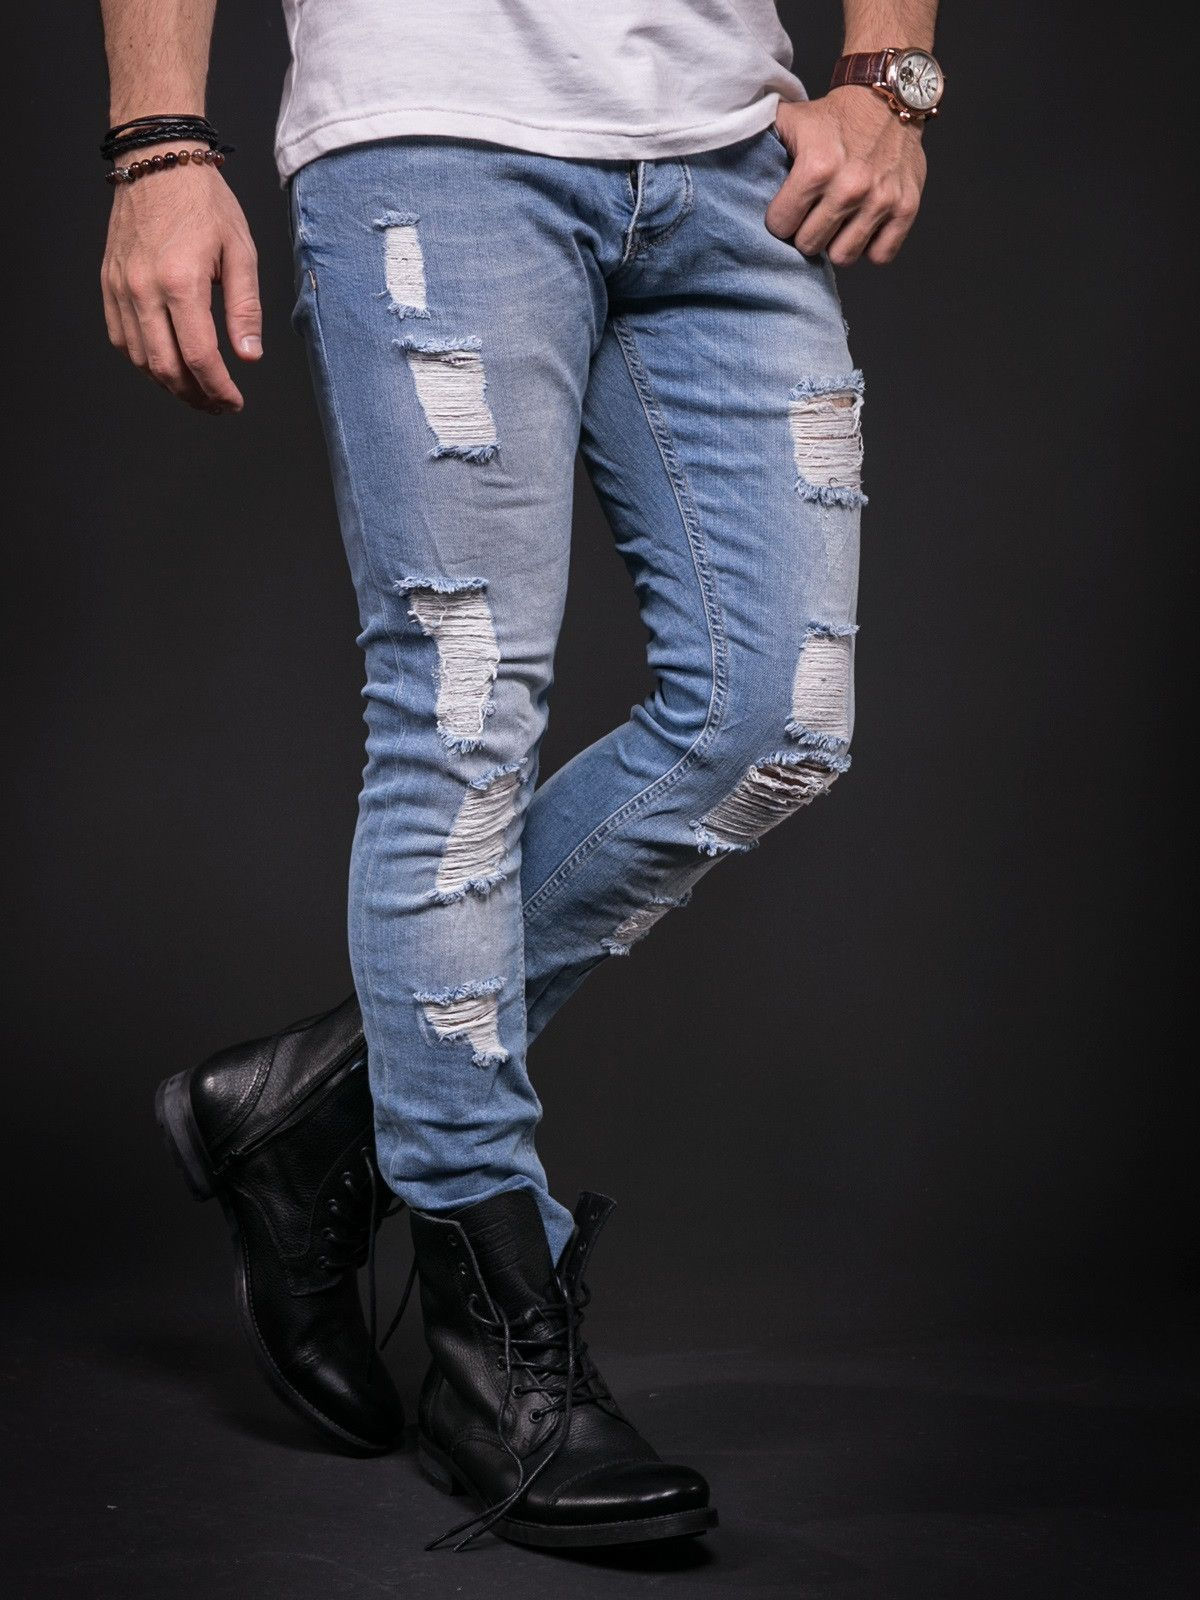 10aaa417 ADJ Men Slim Fit Ripped Destroyed Jeans - Light Blue | King clothes ...